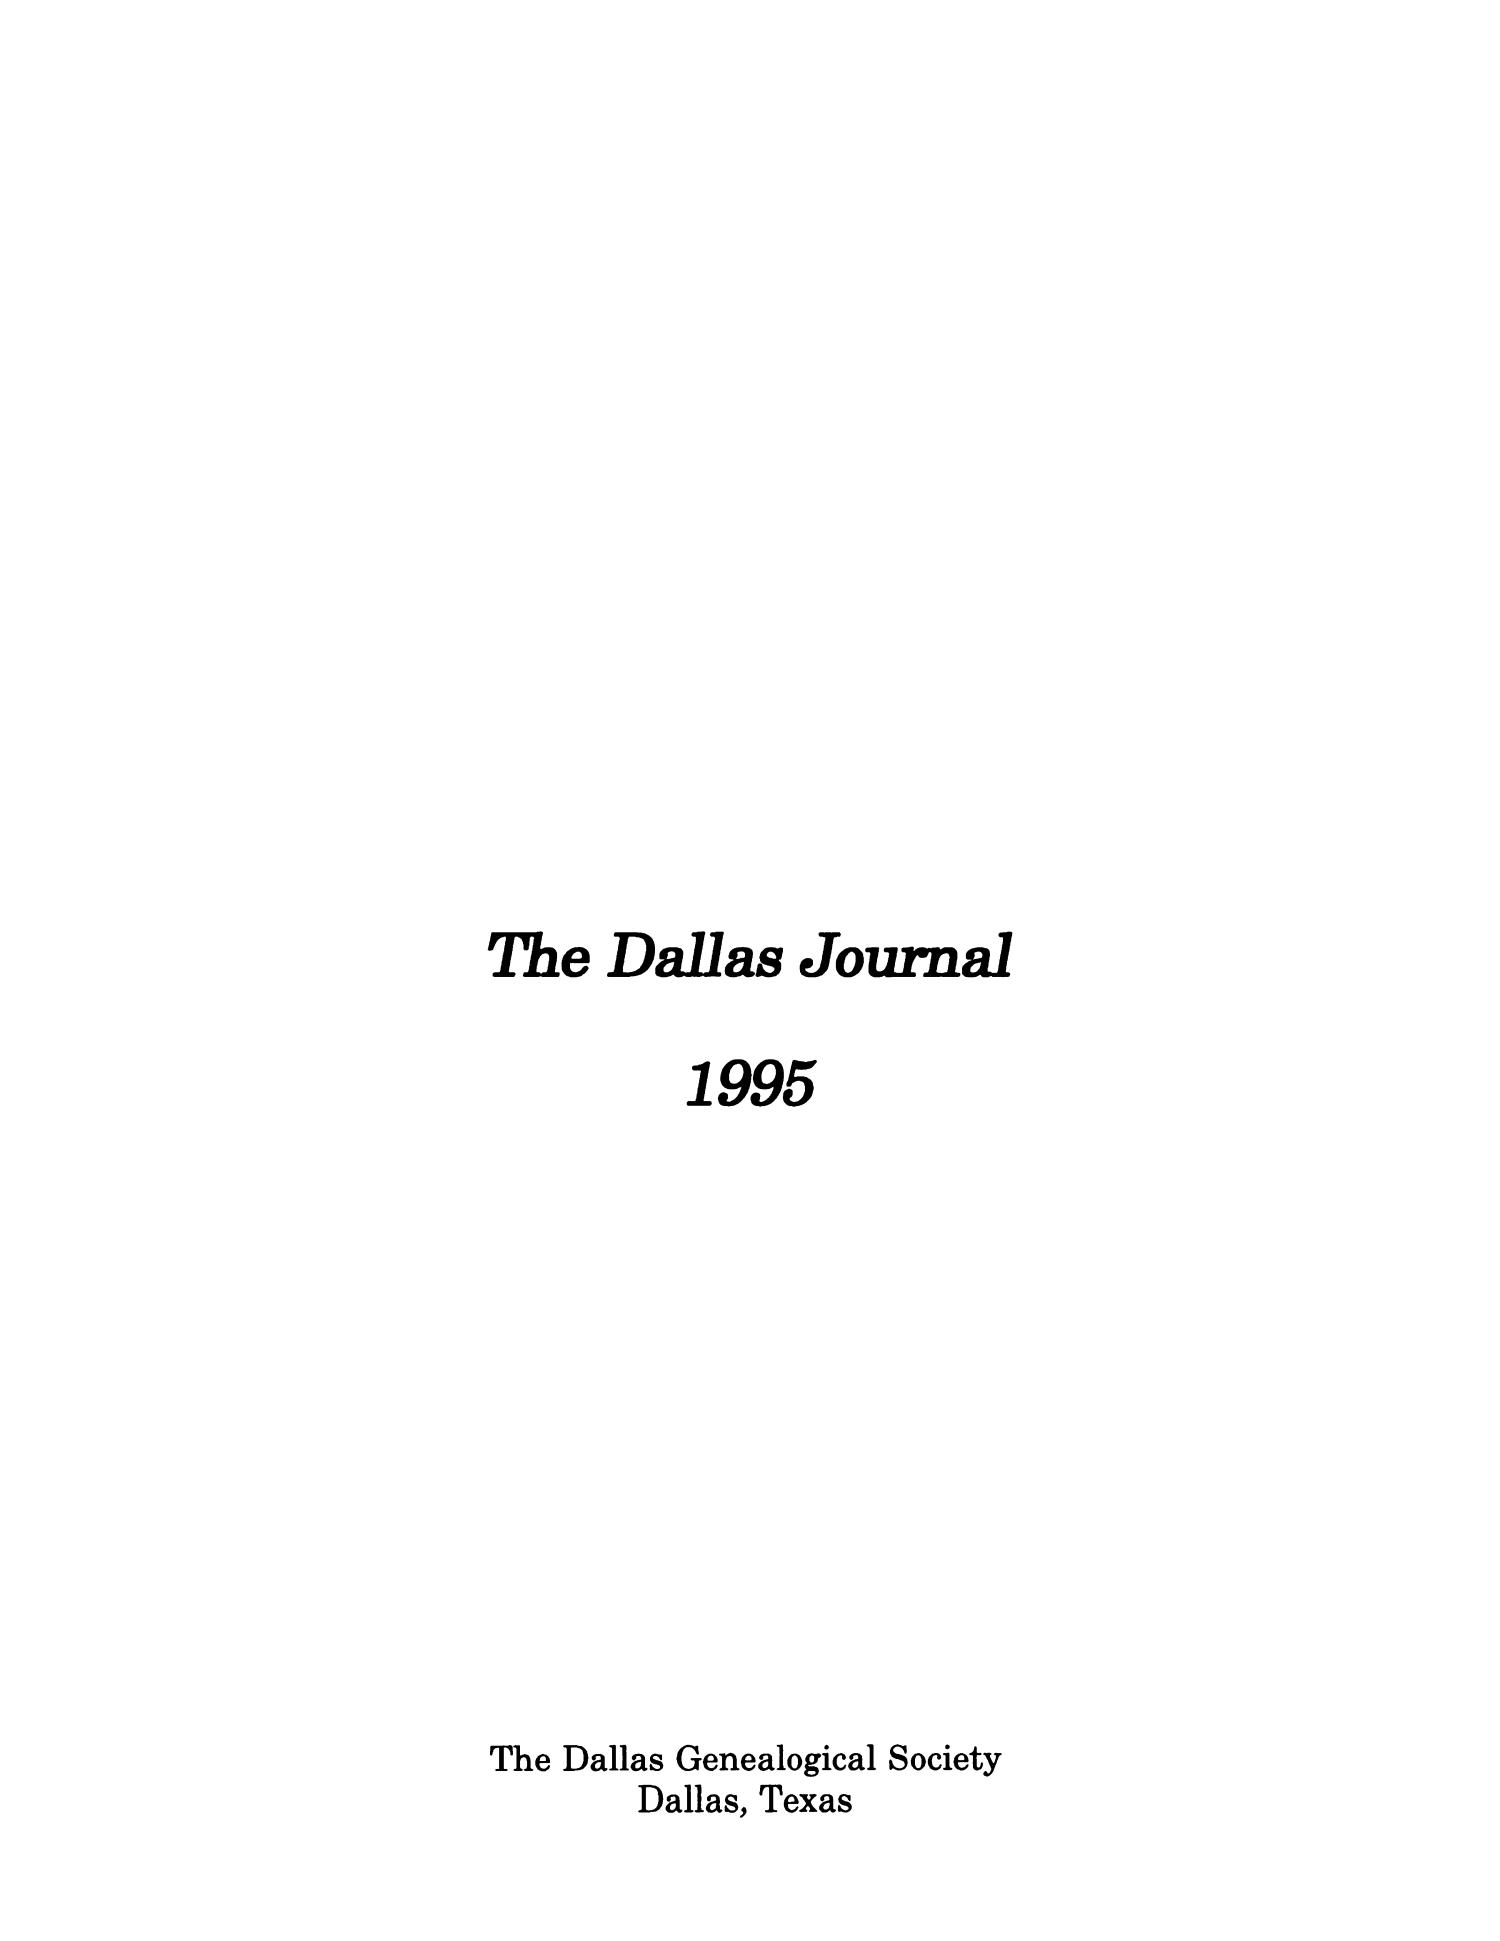 The Dallas Journal, Volume 41, 1995                                                                                                      Title Page